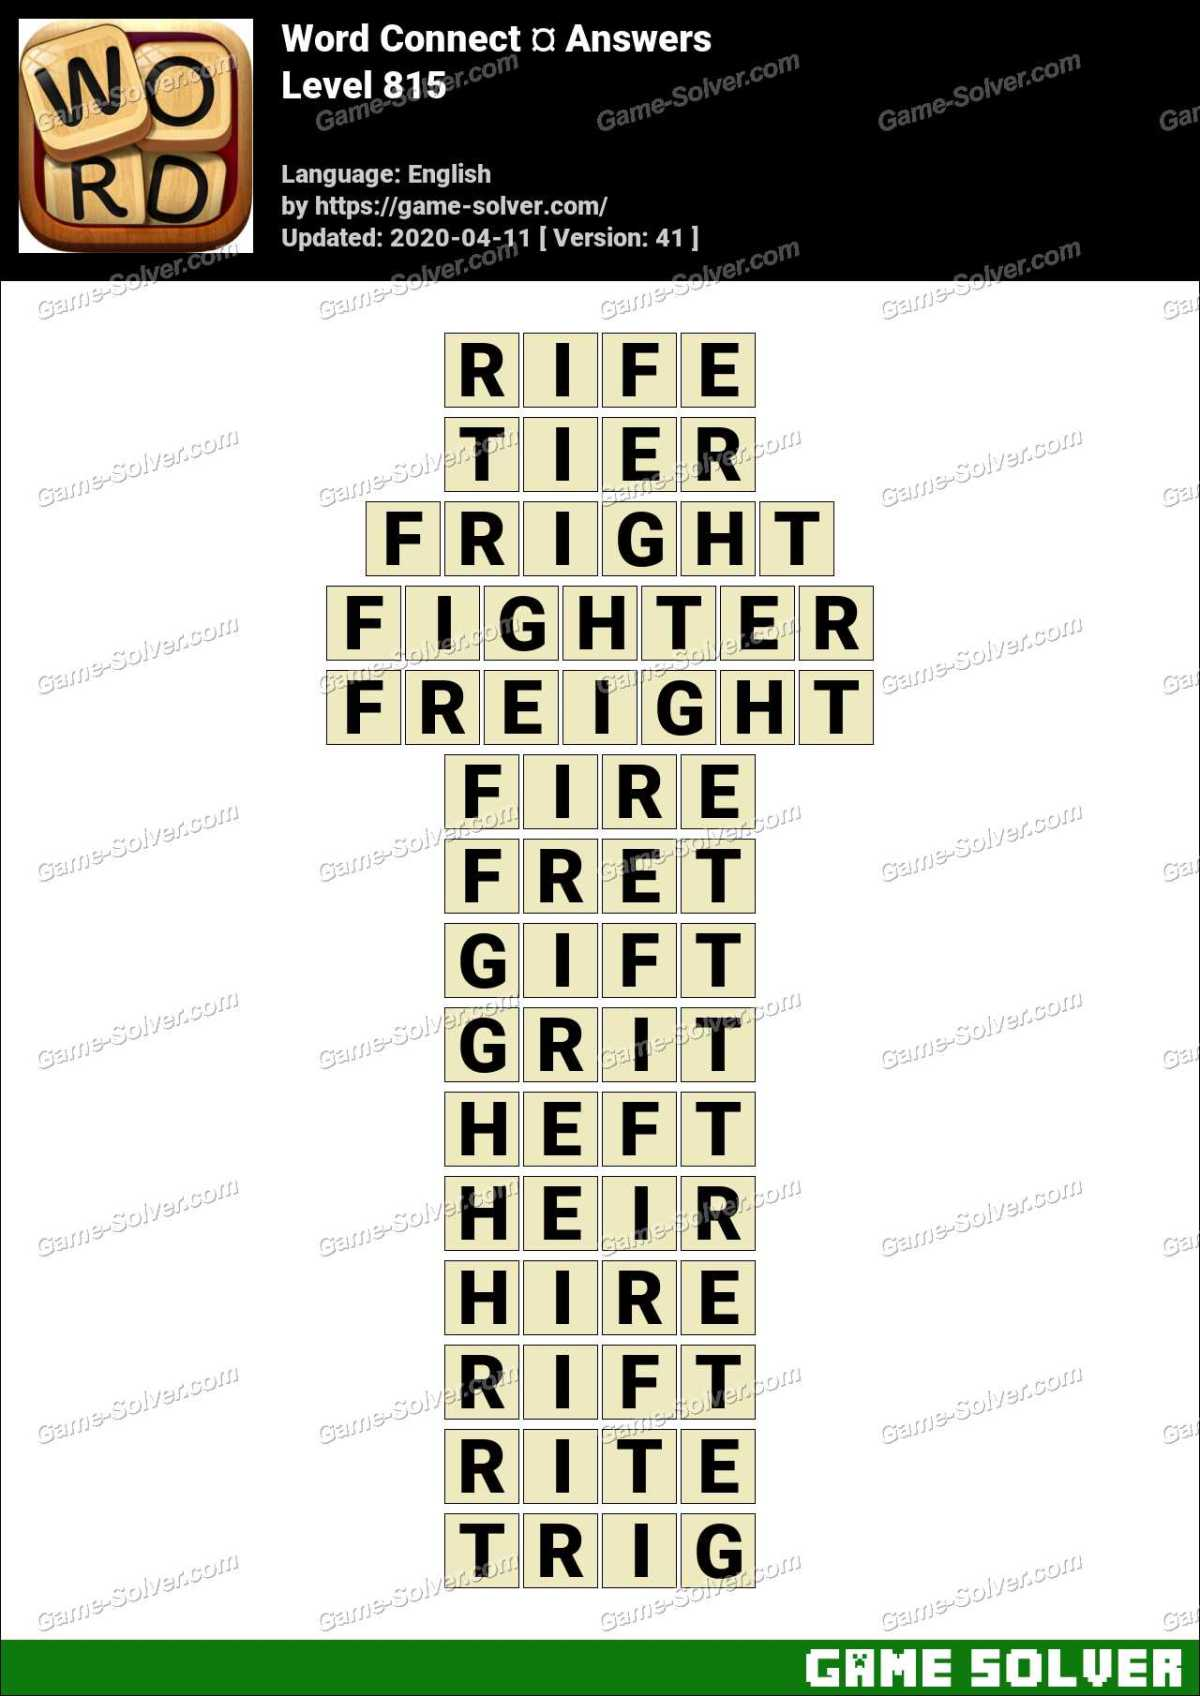 Word Connect Level 815 Answers